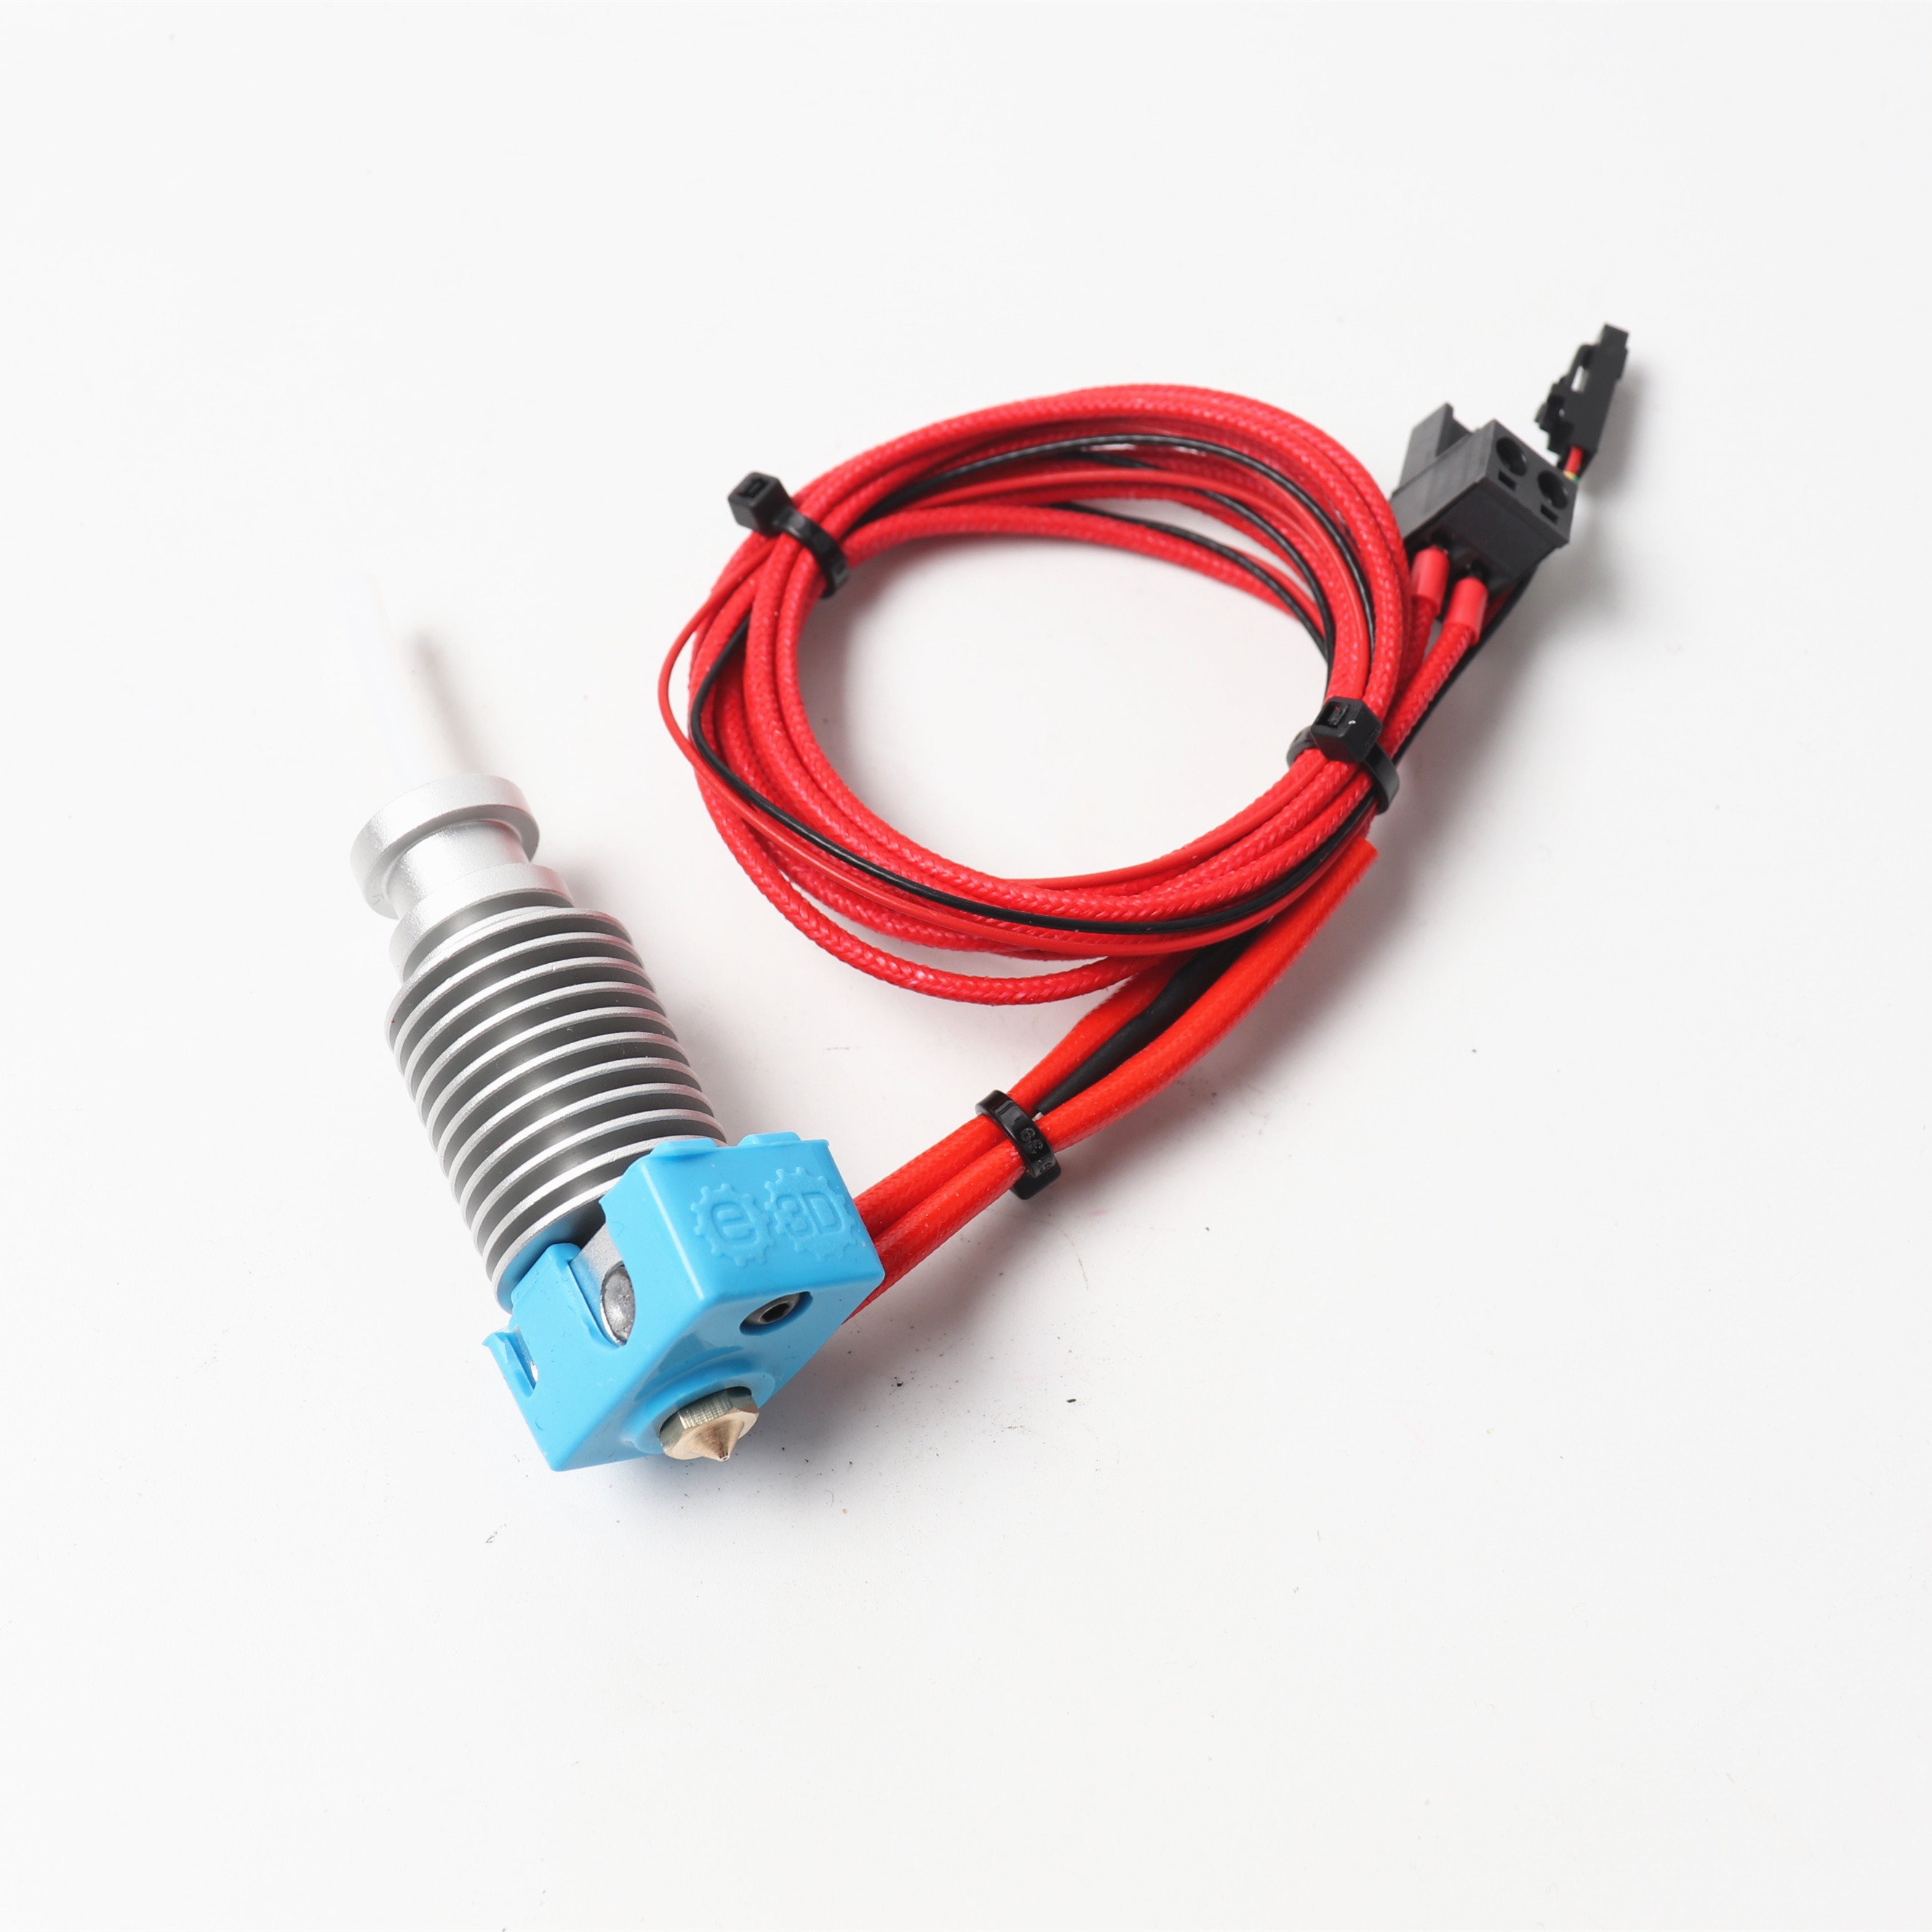 1set assambled Hotend kit 0.4MM nozzle for DIY <font><b>PRUSA</b></font> <font><b>i3</b></font> <font><b>MK3</b></font> MK2S/MK2.5 <font><b>3d</b></font> <font><b>Printer</b></font> image